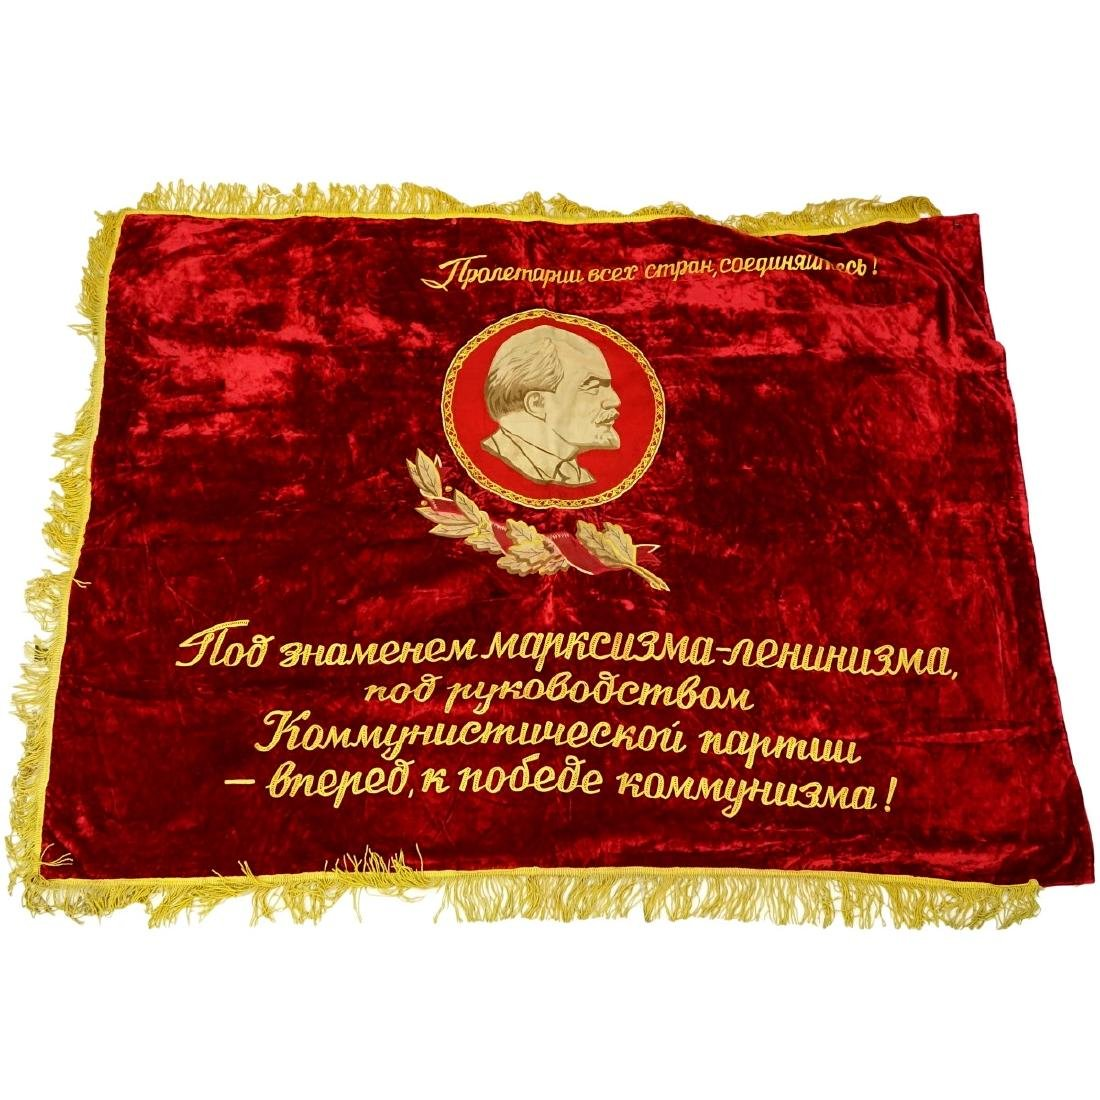 20th Century Russian Soviet Era Banner